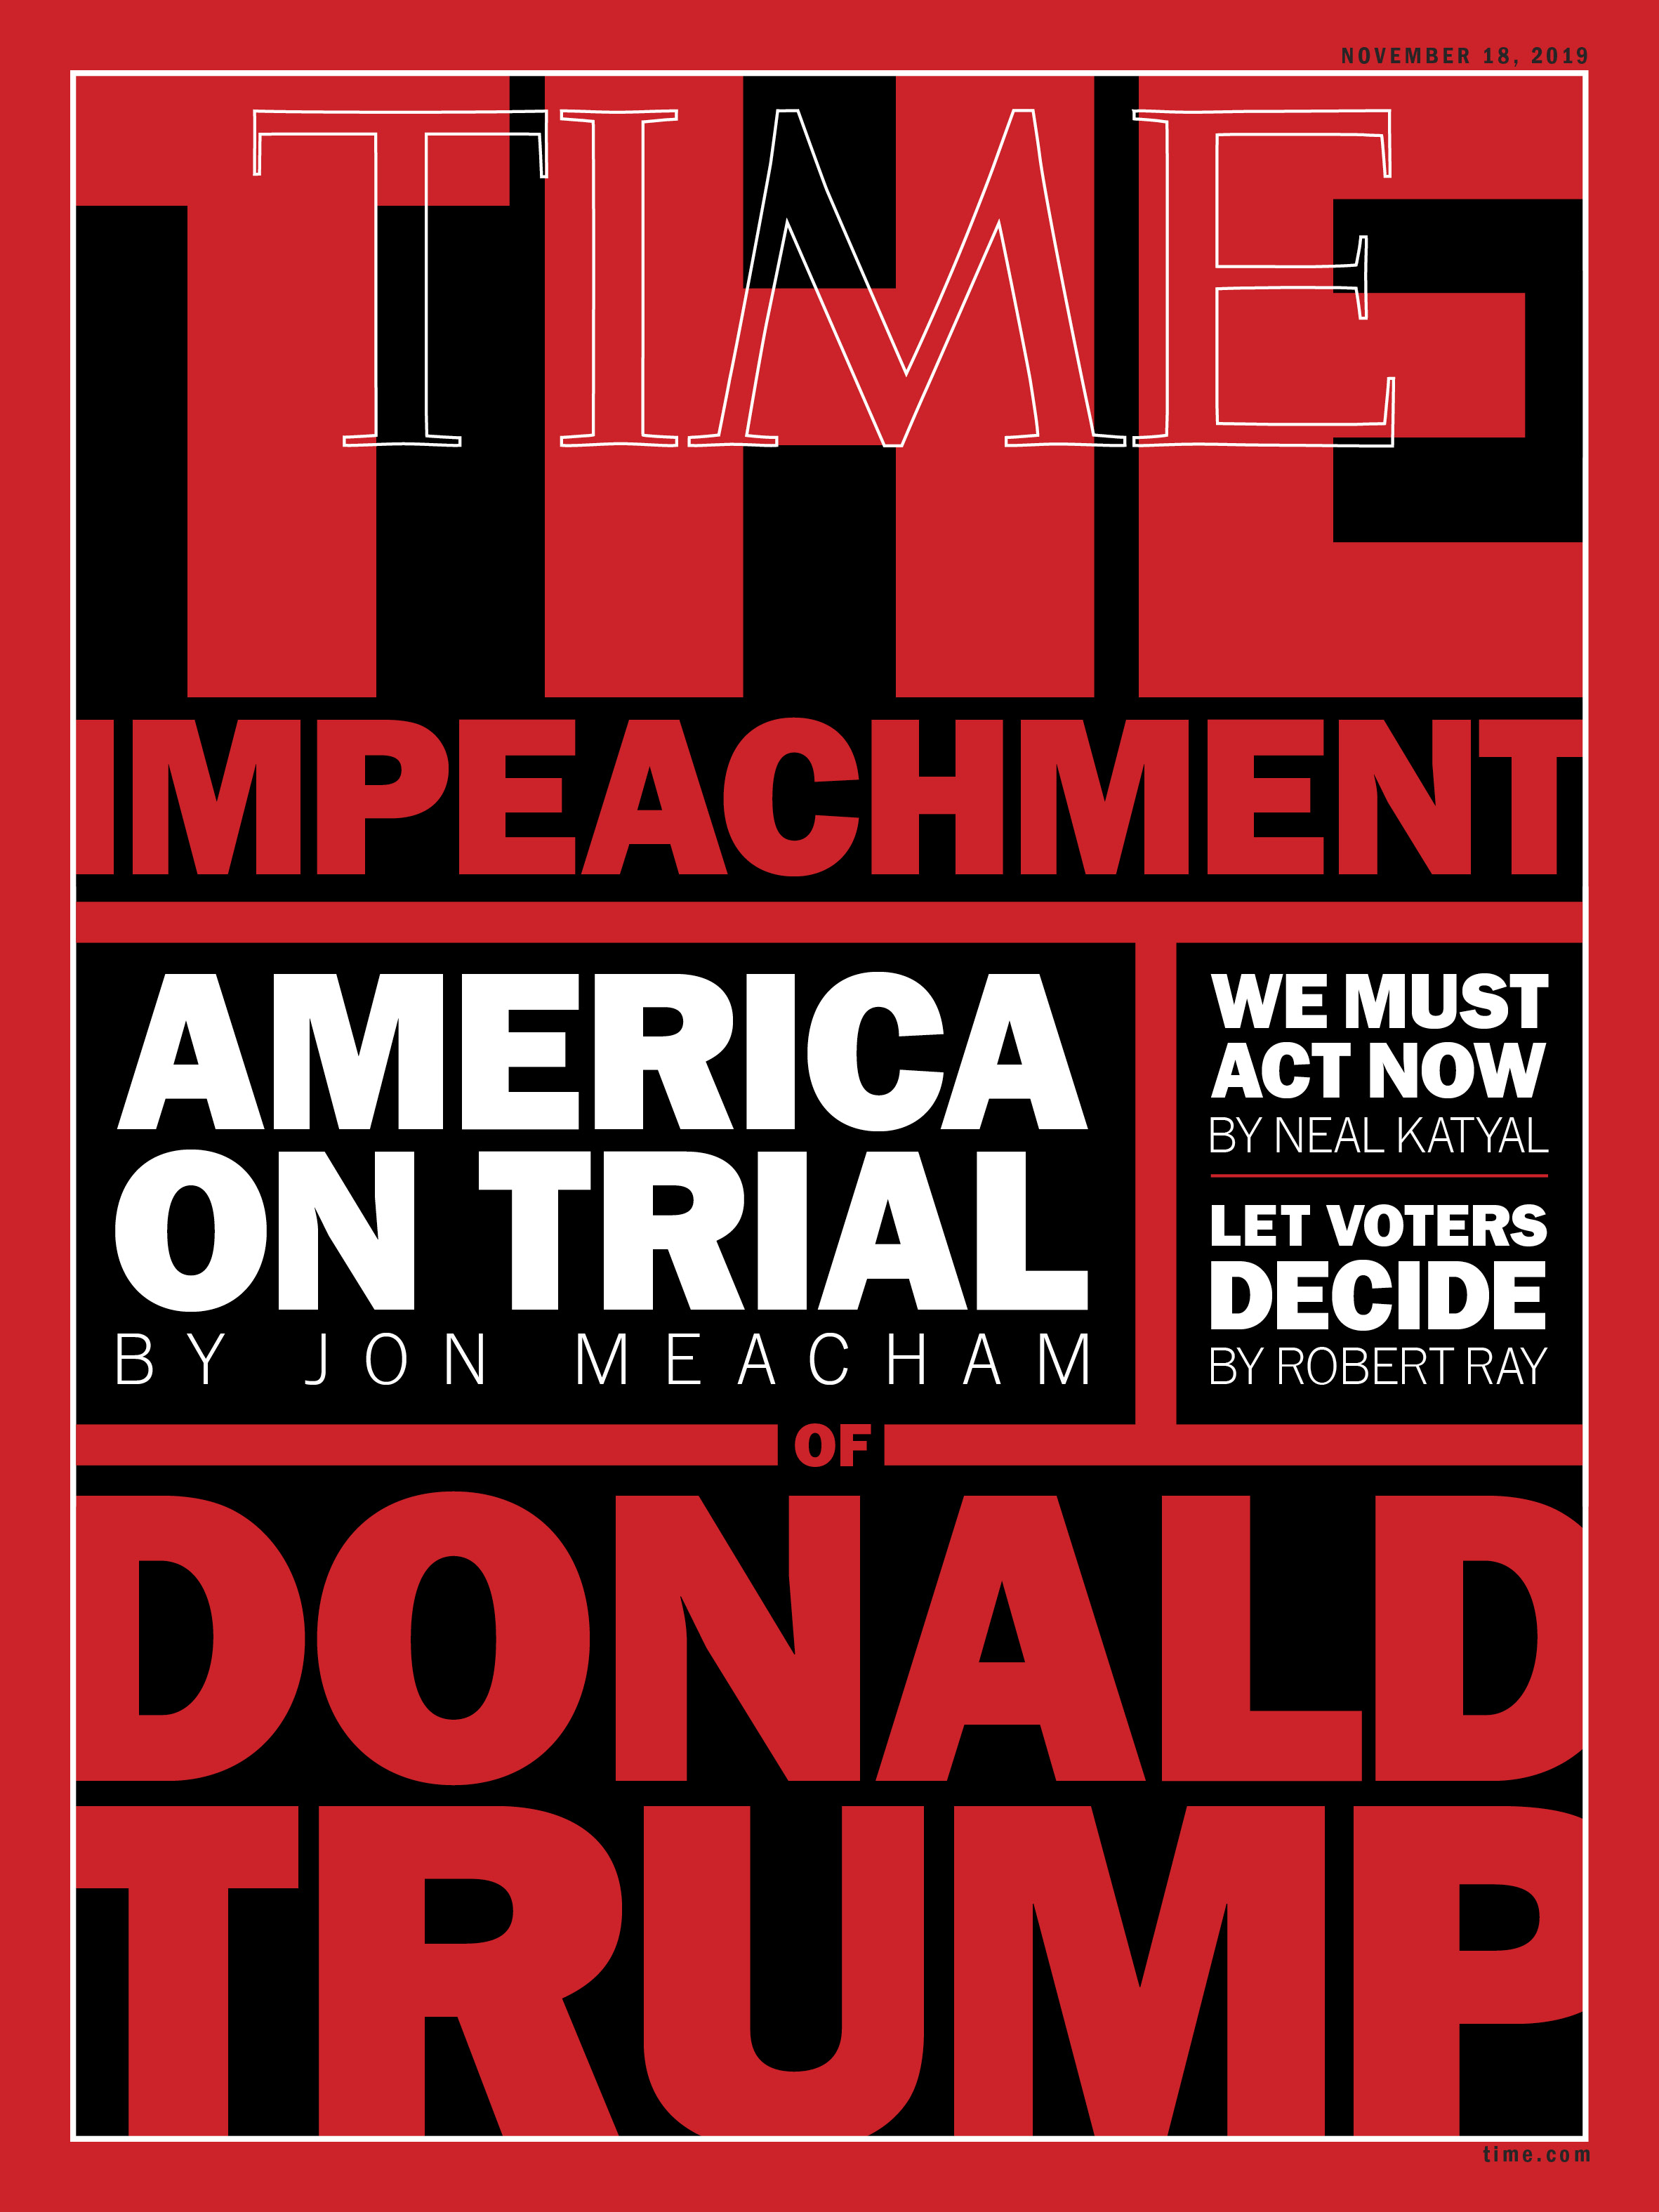 We Shouldn T Impeach Trump On The Basis Of Flawed Theory Time